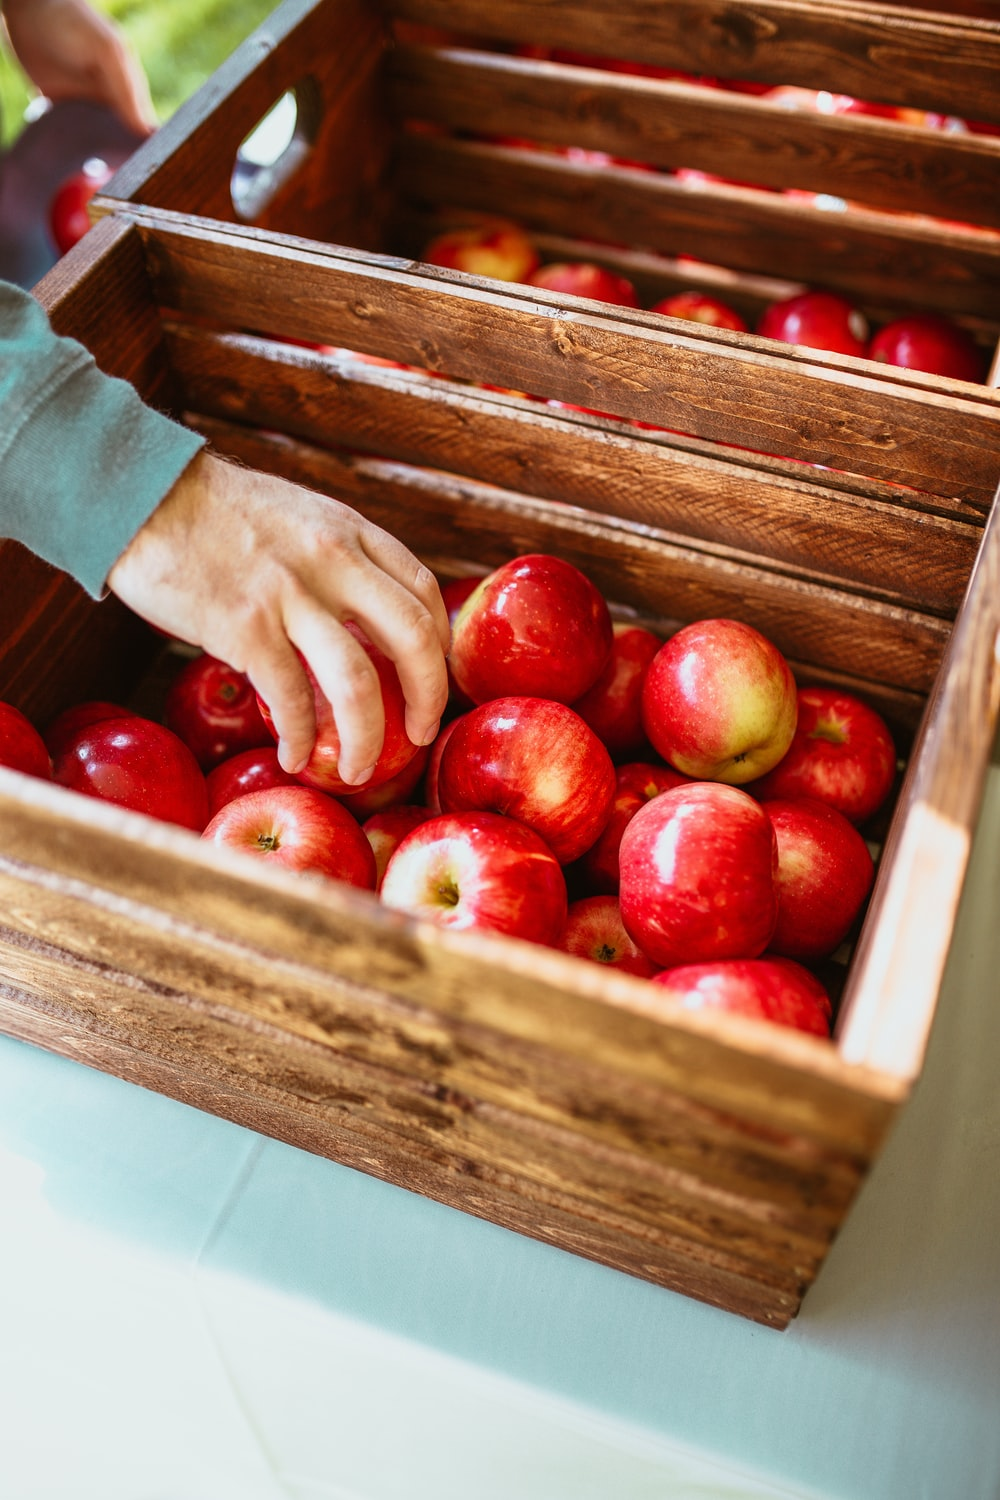 red fruits in brown wooden crate